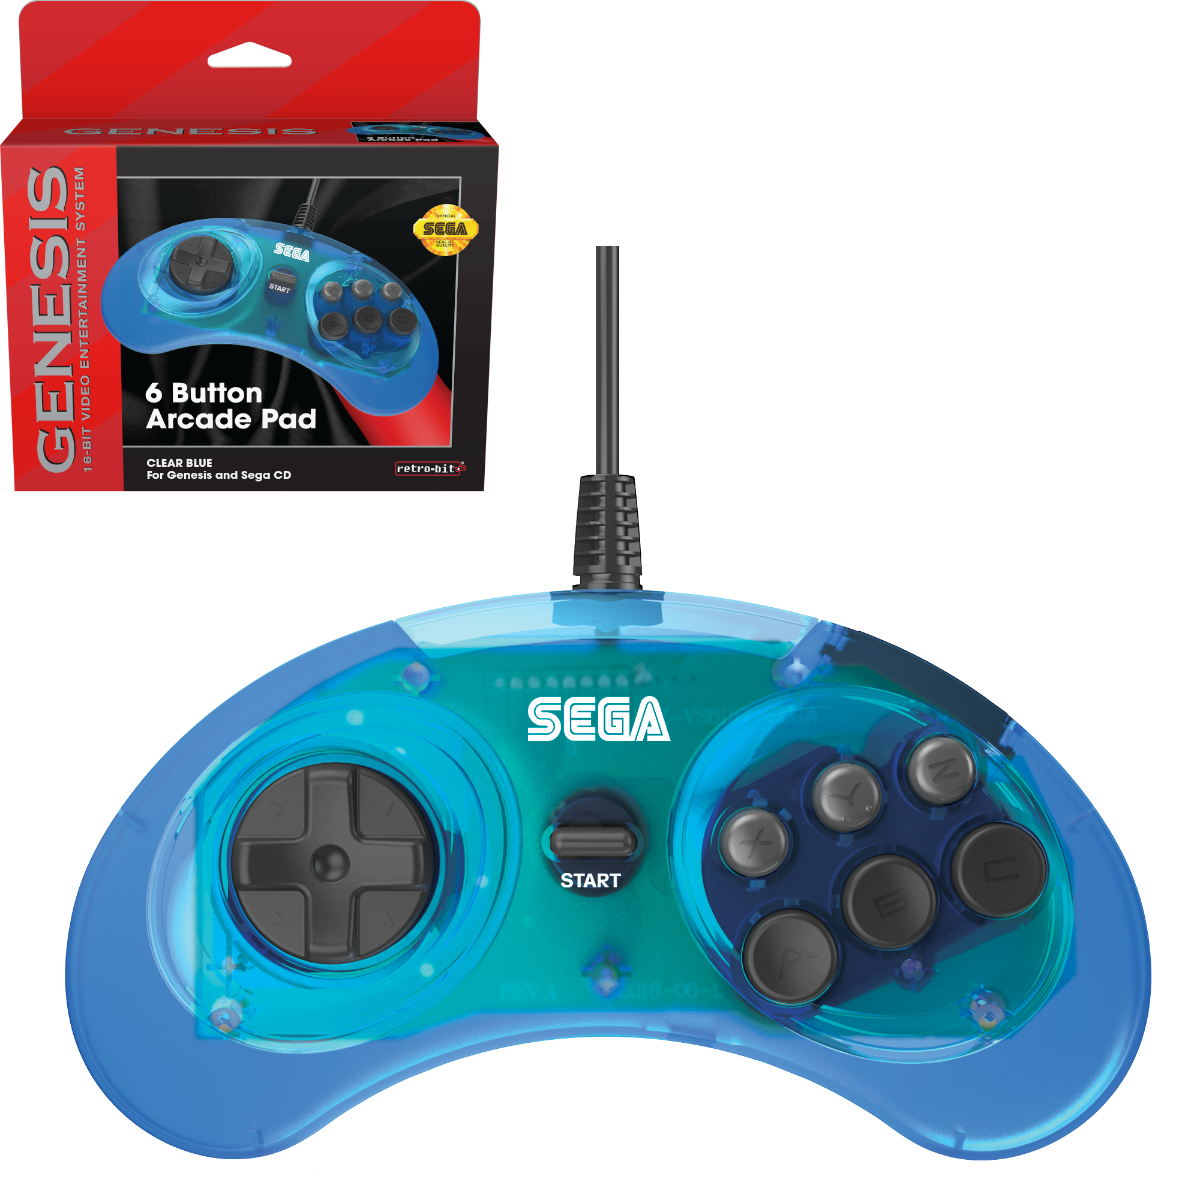 SEGA, Genesis, Arcade Pad, 6 Button, Black, Original